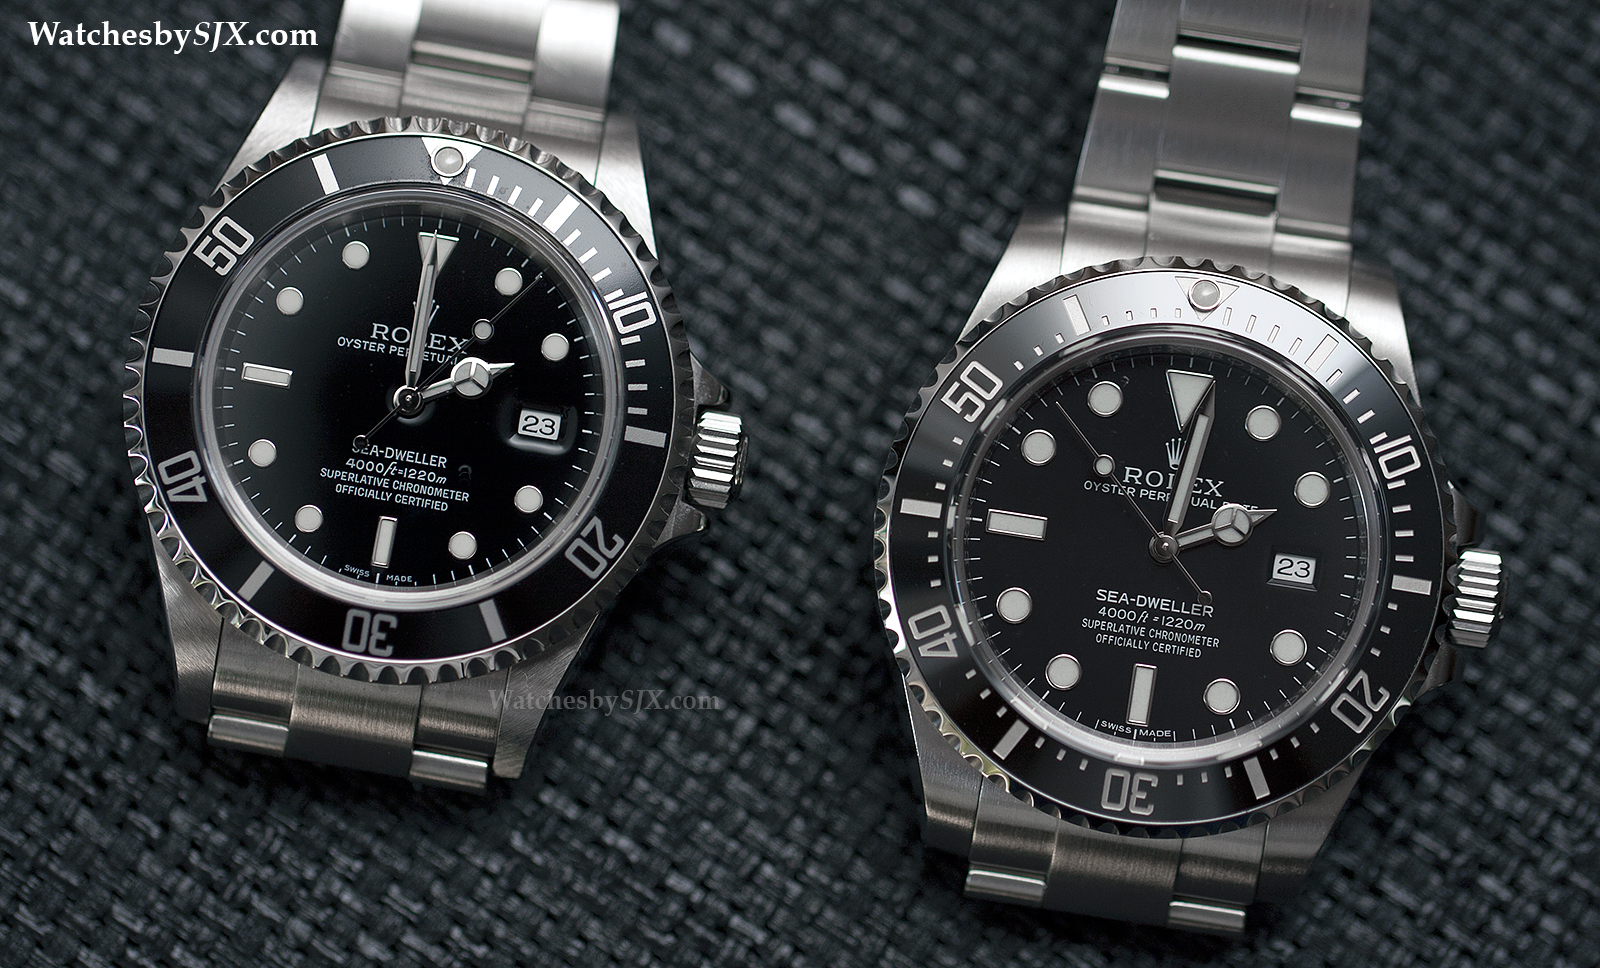 Rolex Sea Dweller 16600 Replica The Rolex Sea-dweller Left